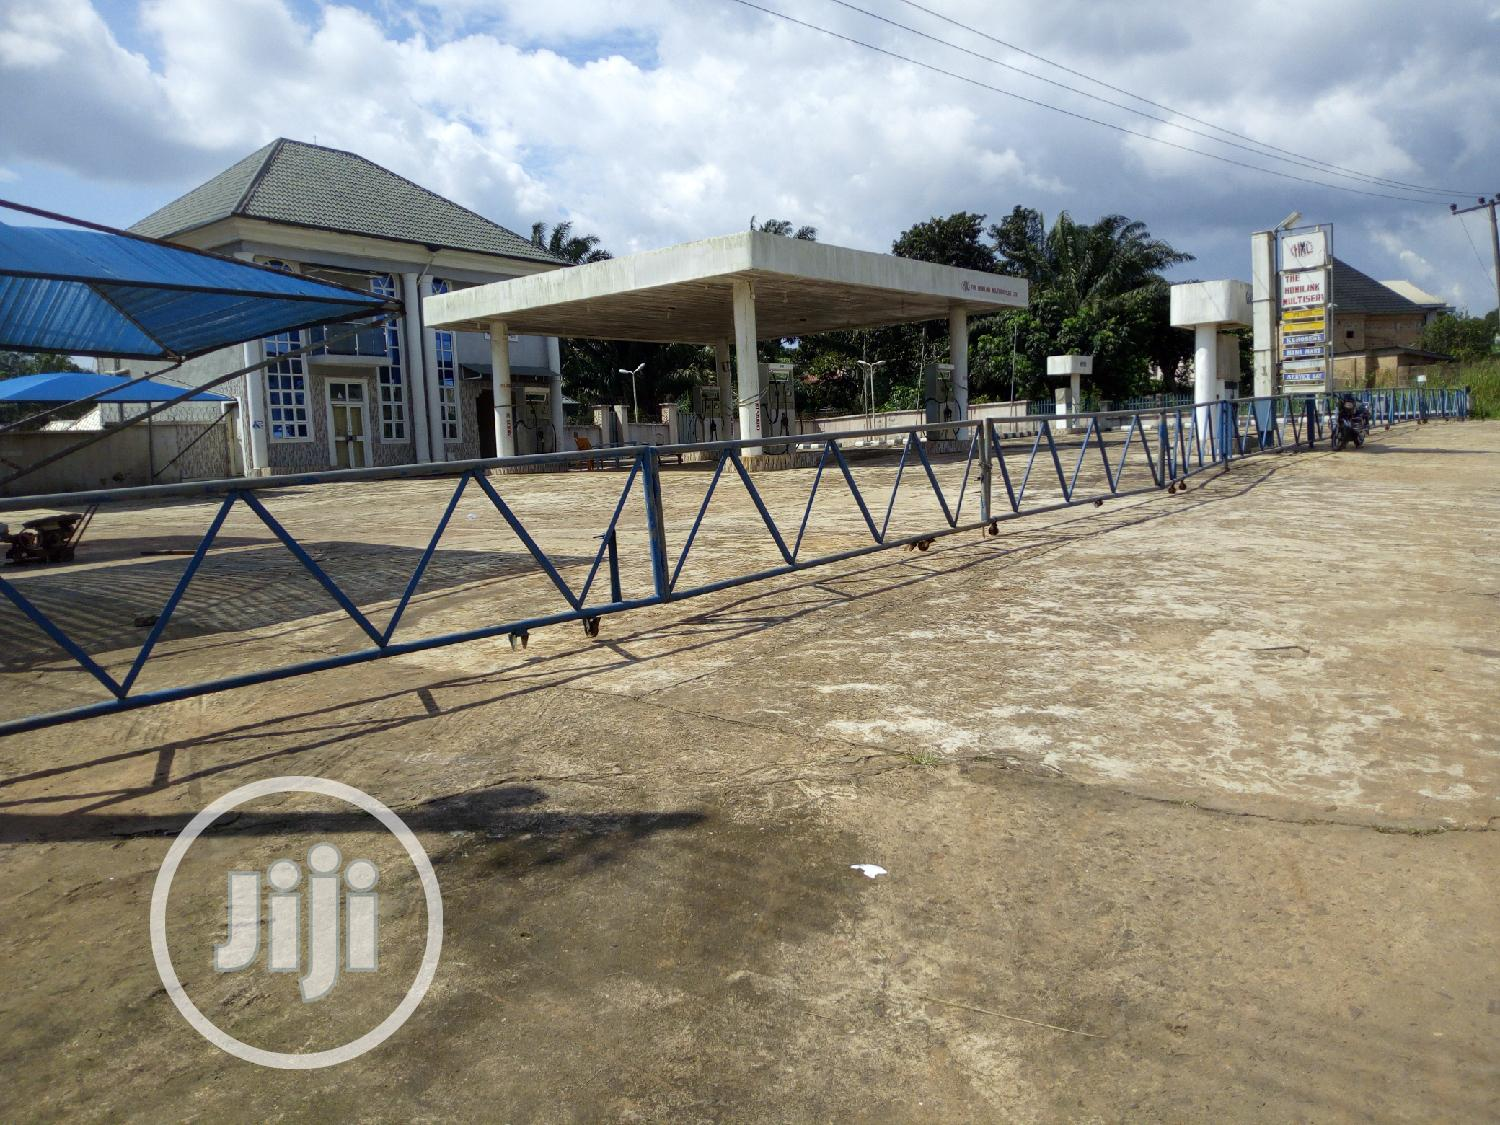 Archive: Filling Station With for Sale